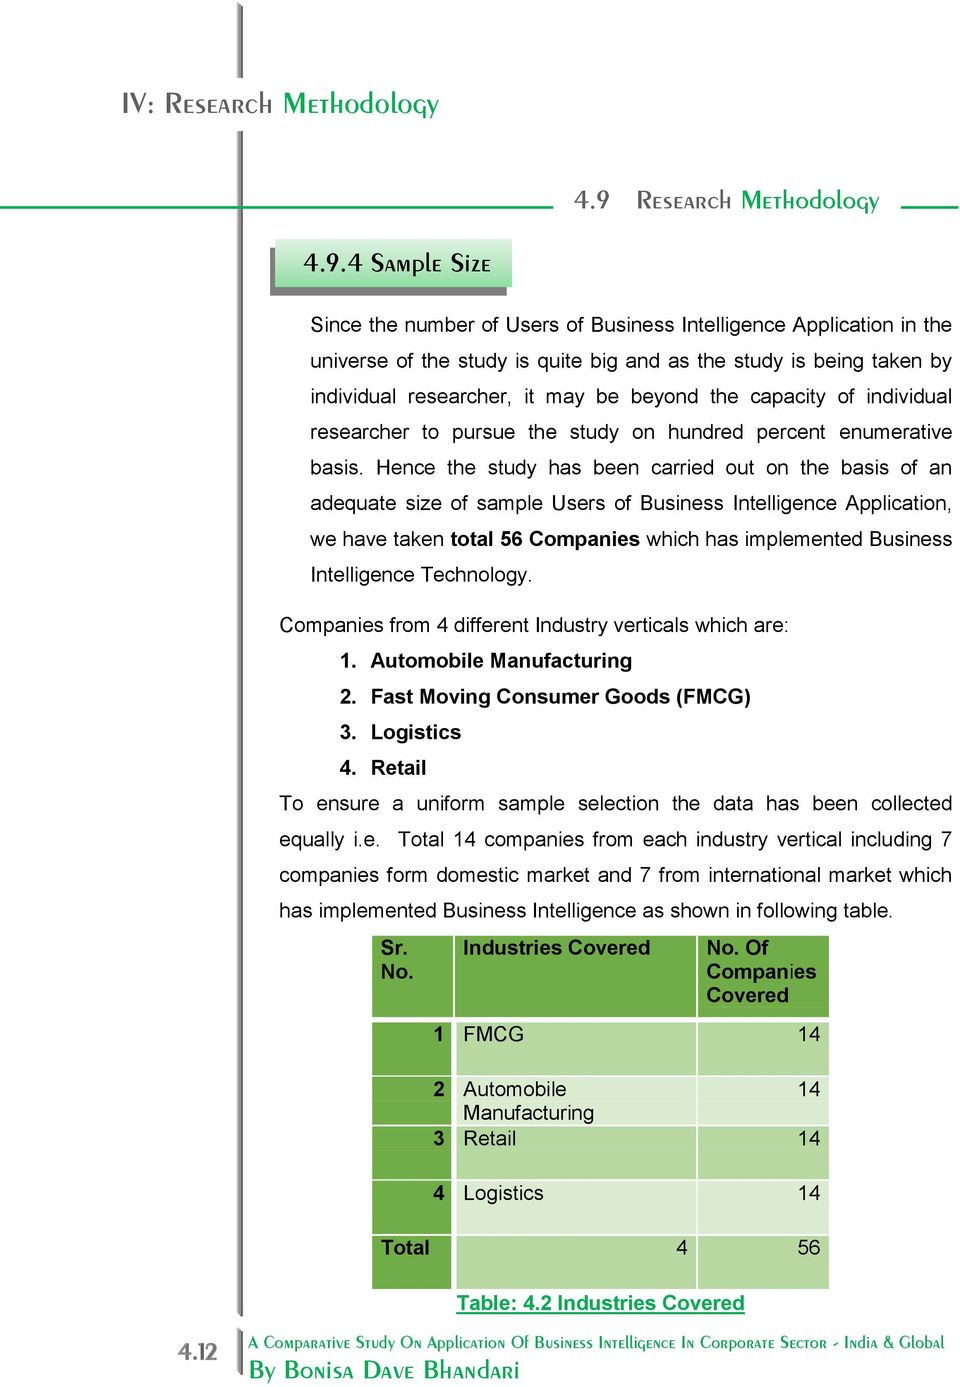 Hence the study has been carried out on the basis of an adequate size of sample Users of Business Intelligence Application, we have taken total 56 Companies which has implemented Business